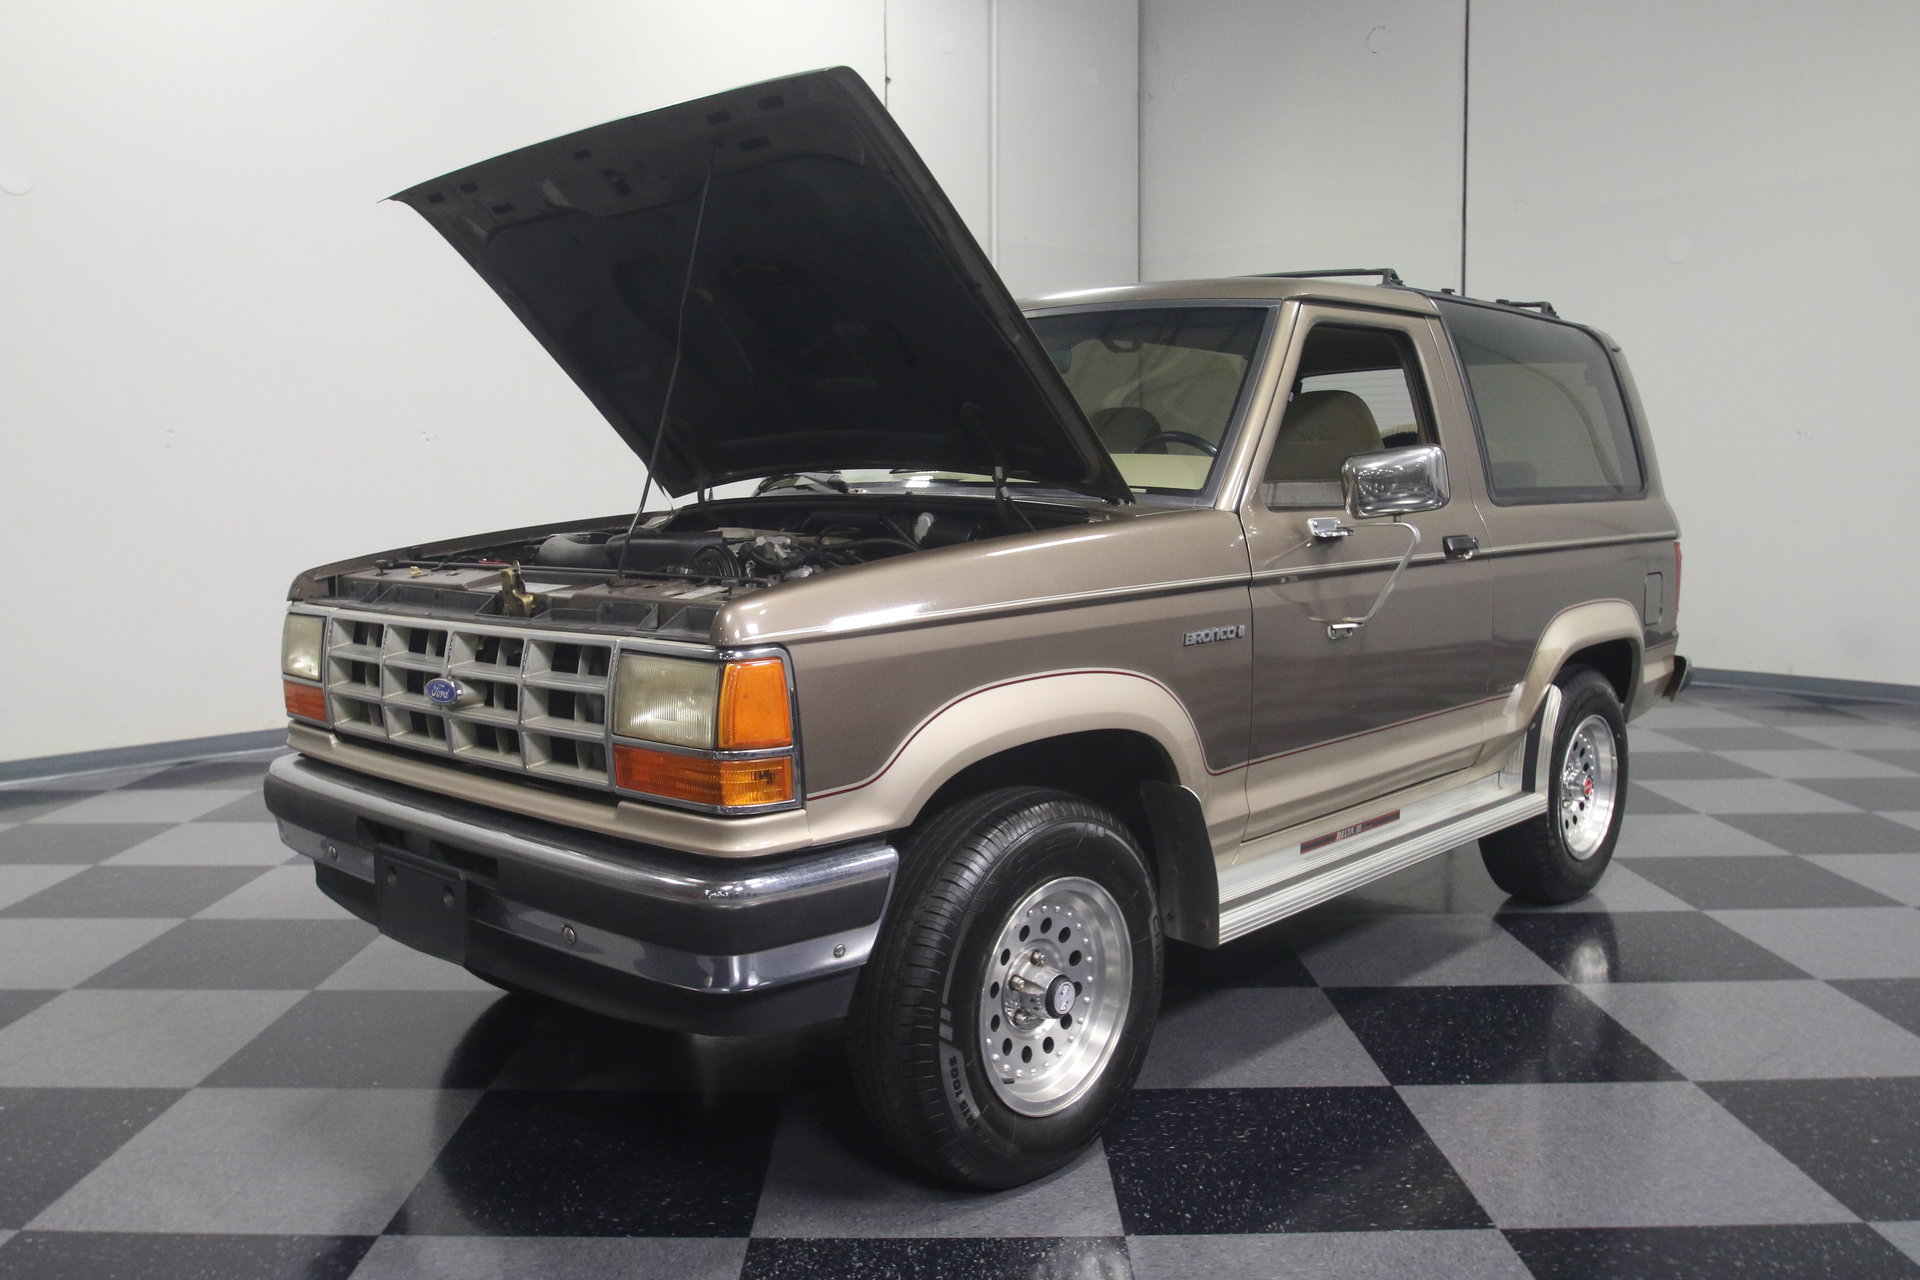 1990 Ford Bronco Ii Streetside Classics The Nations Trusted View 360